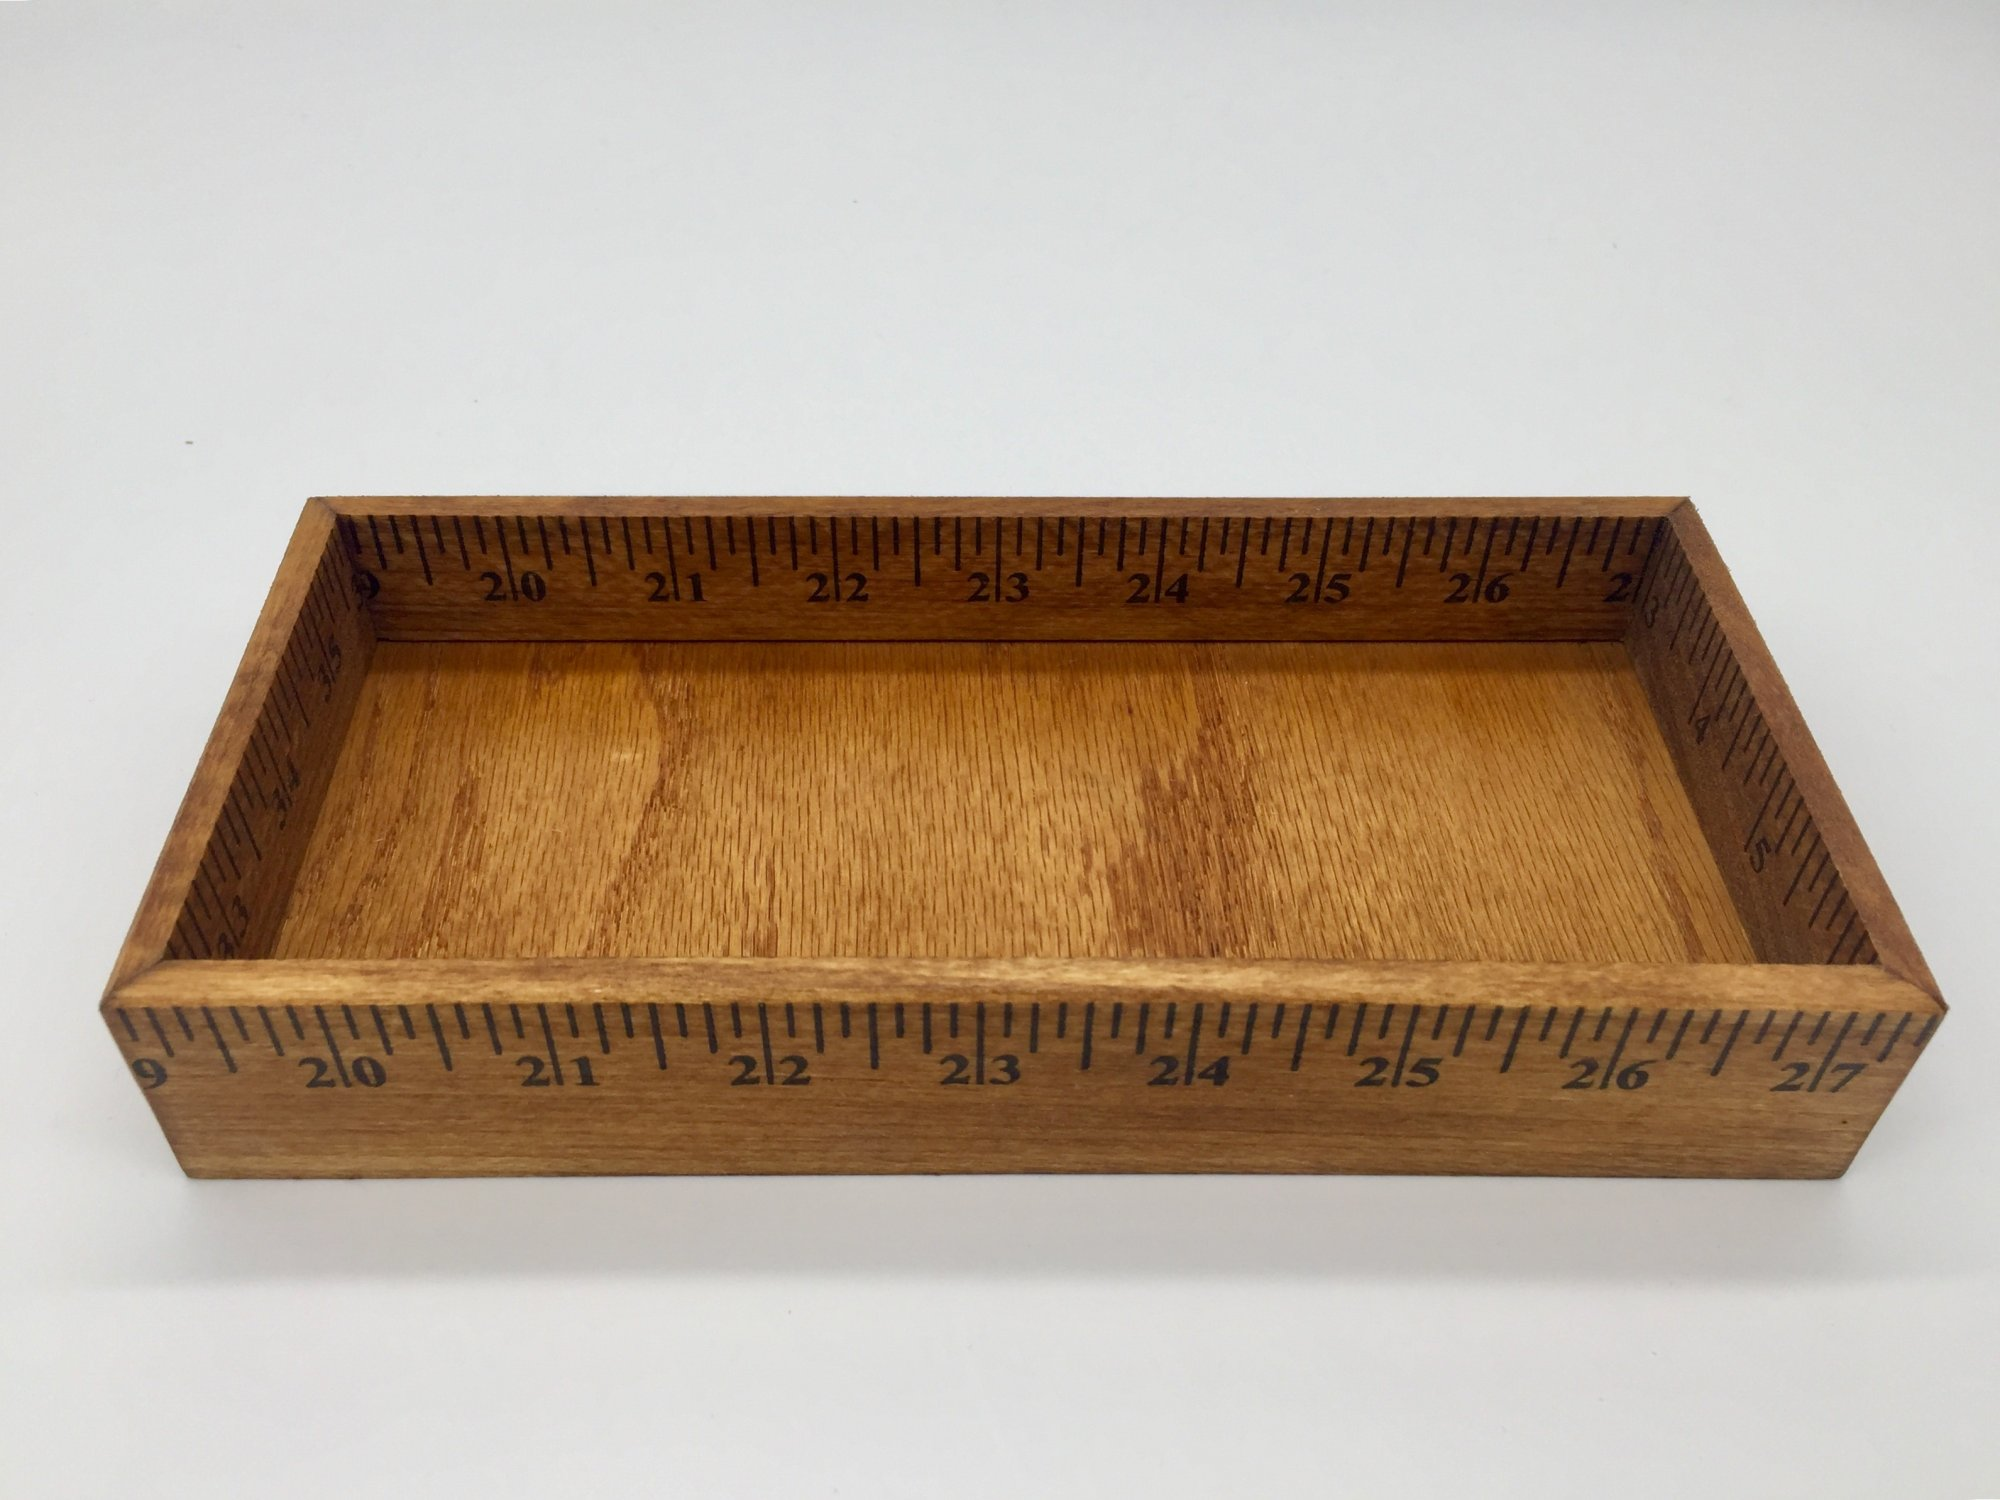 Wooden Ruler Tray